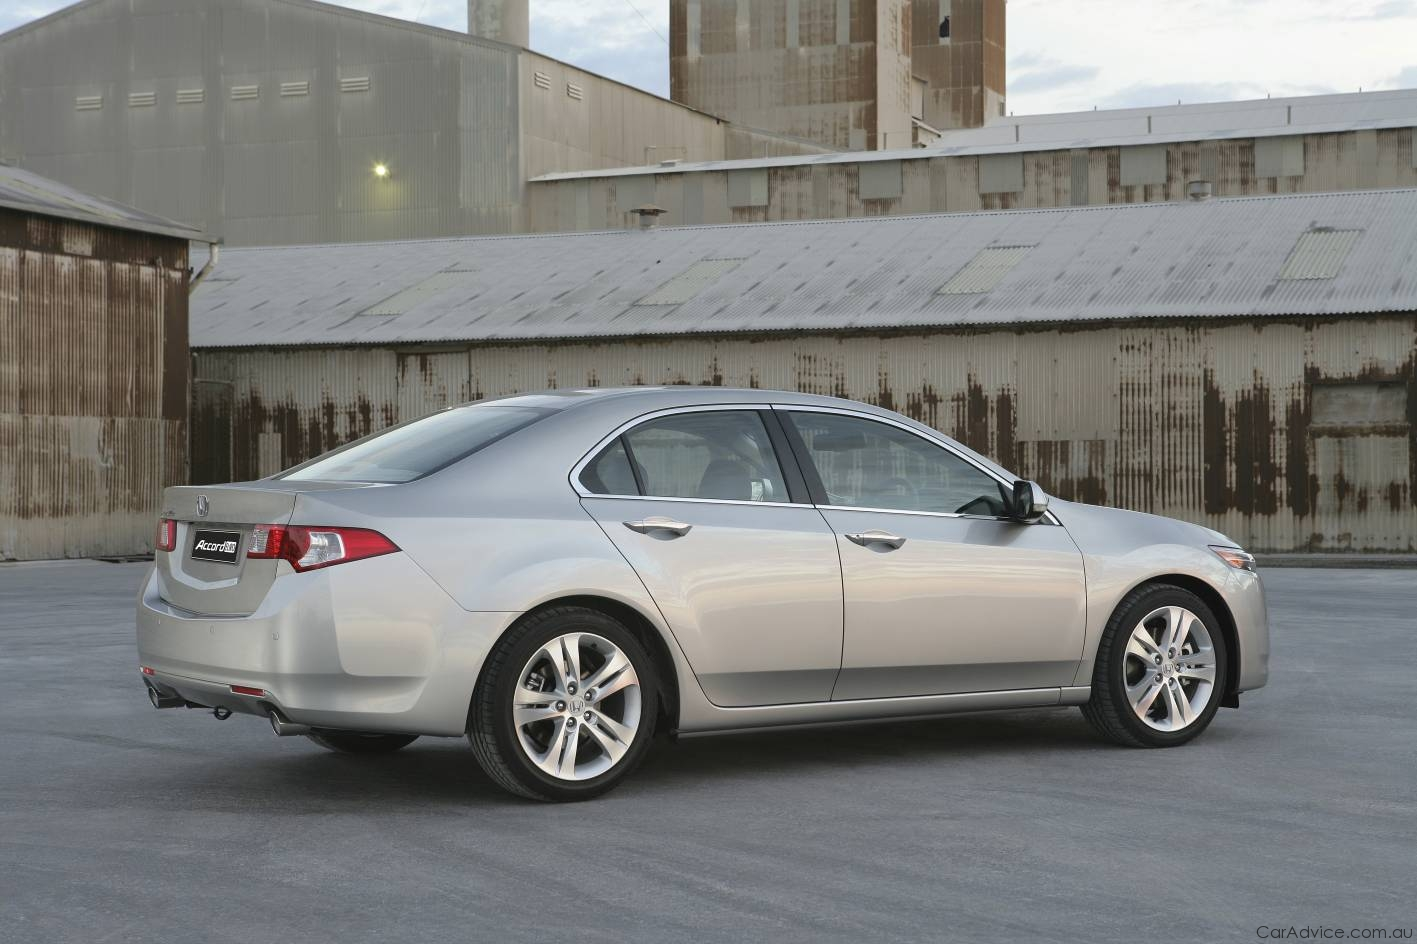 2009 Honda Accord Euro Review & Road Test - photos | CarAdvice